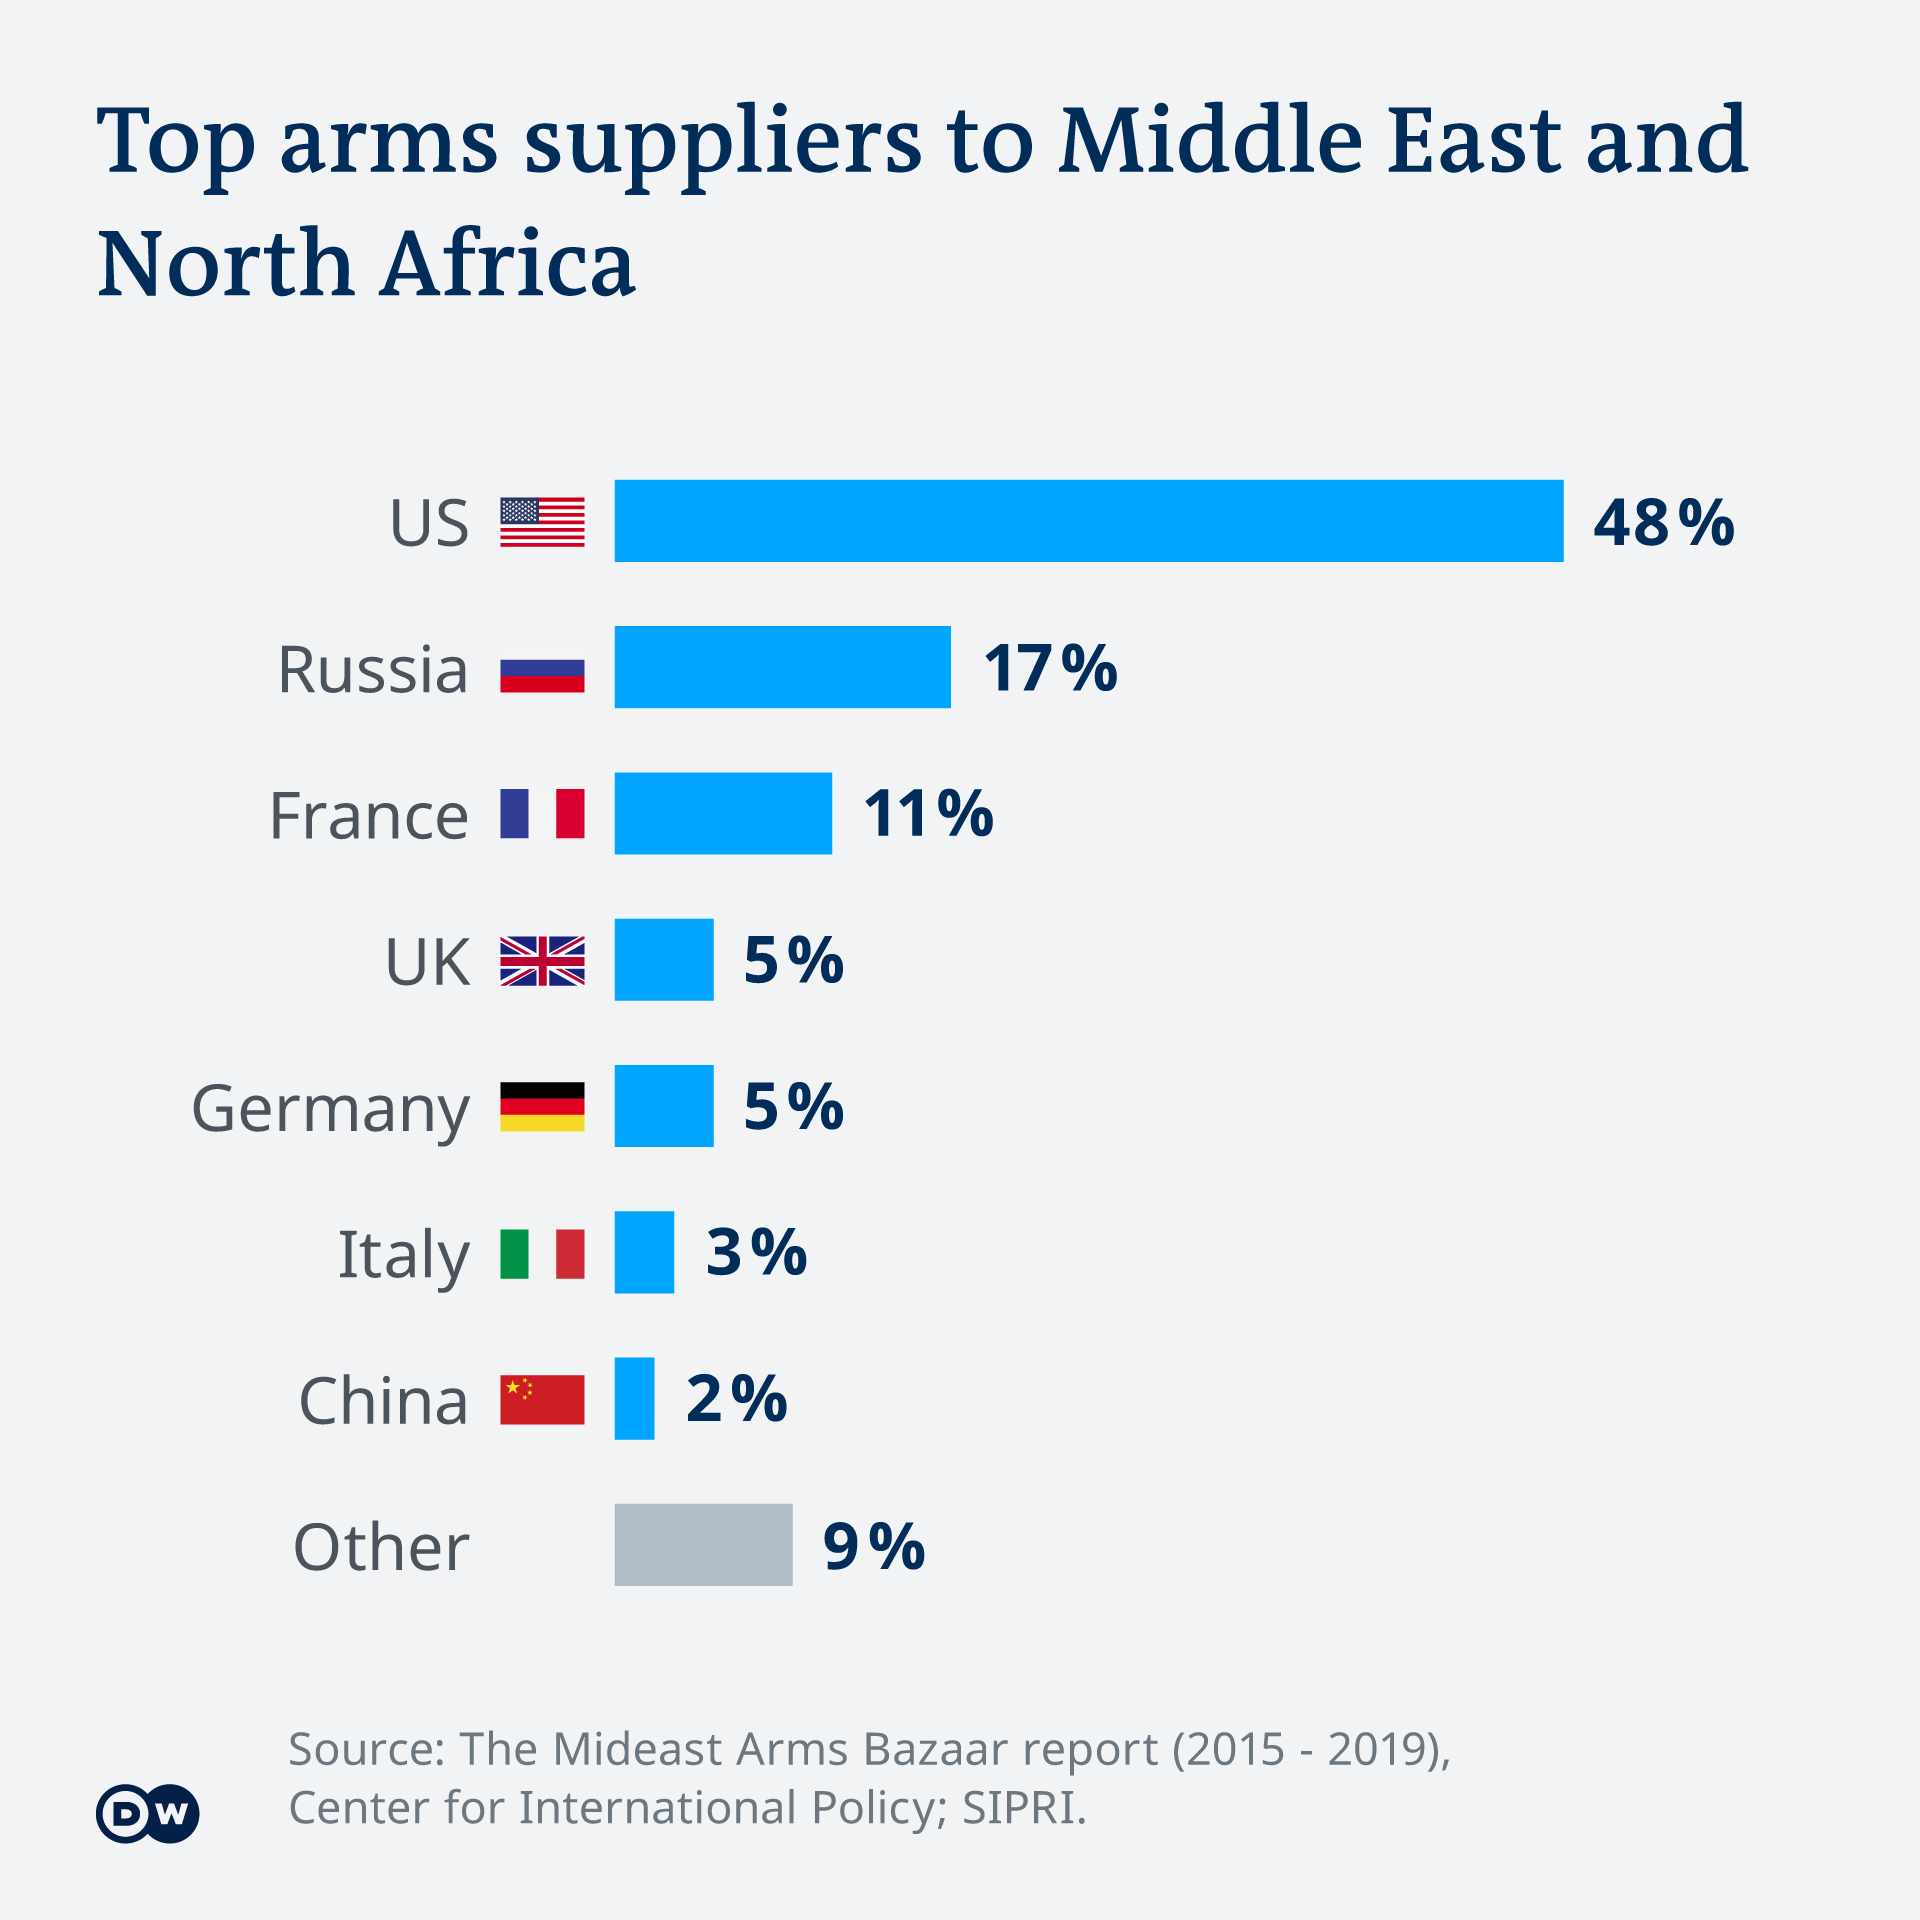 Graph showing Top Arms Suppliers to Middle East